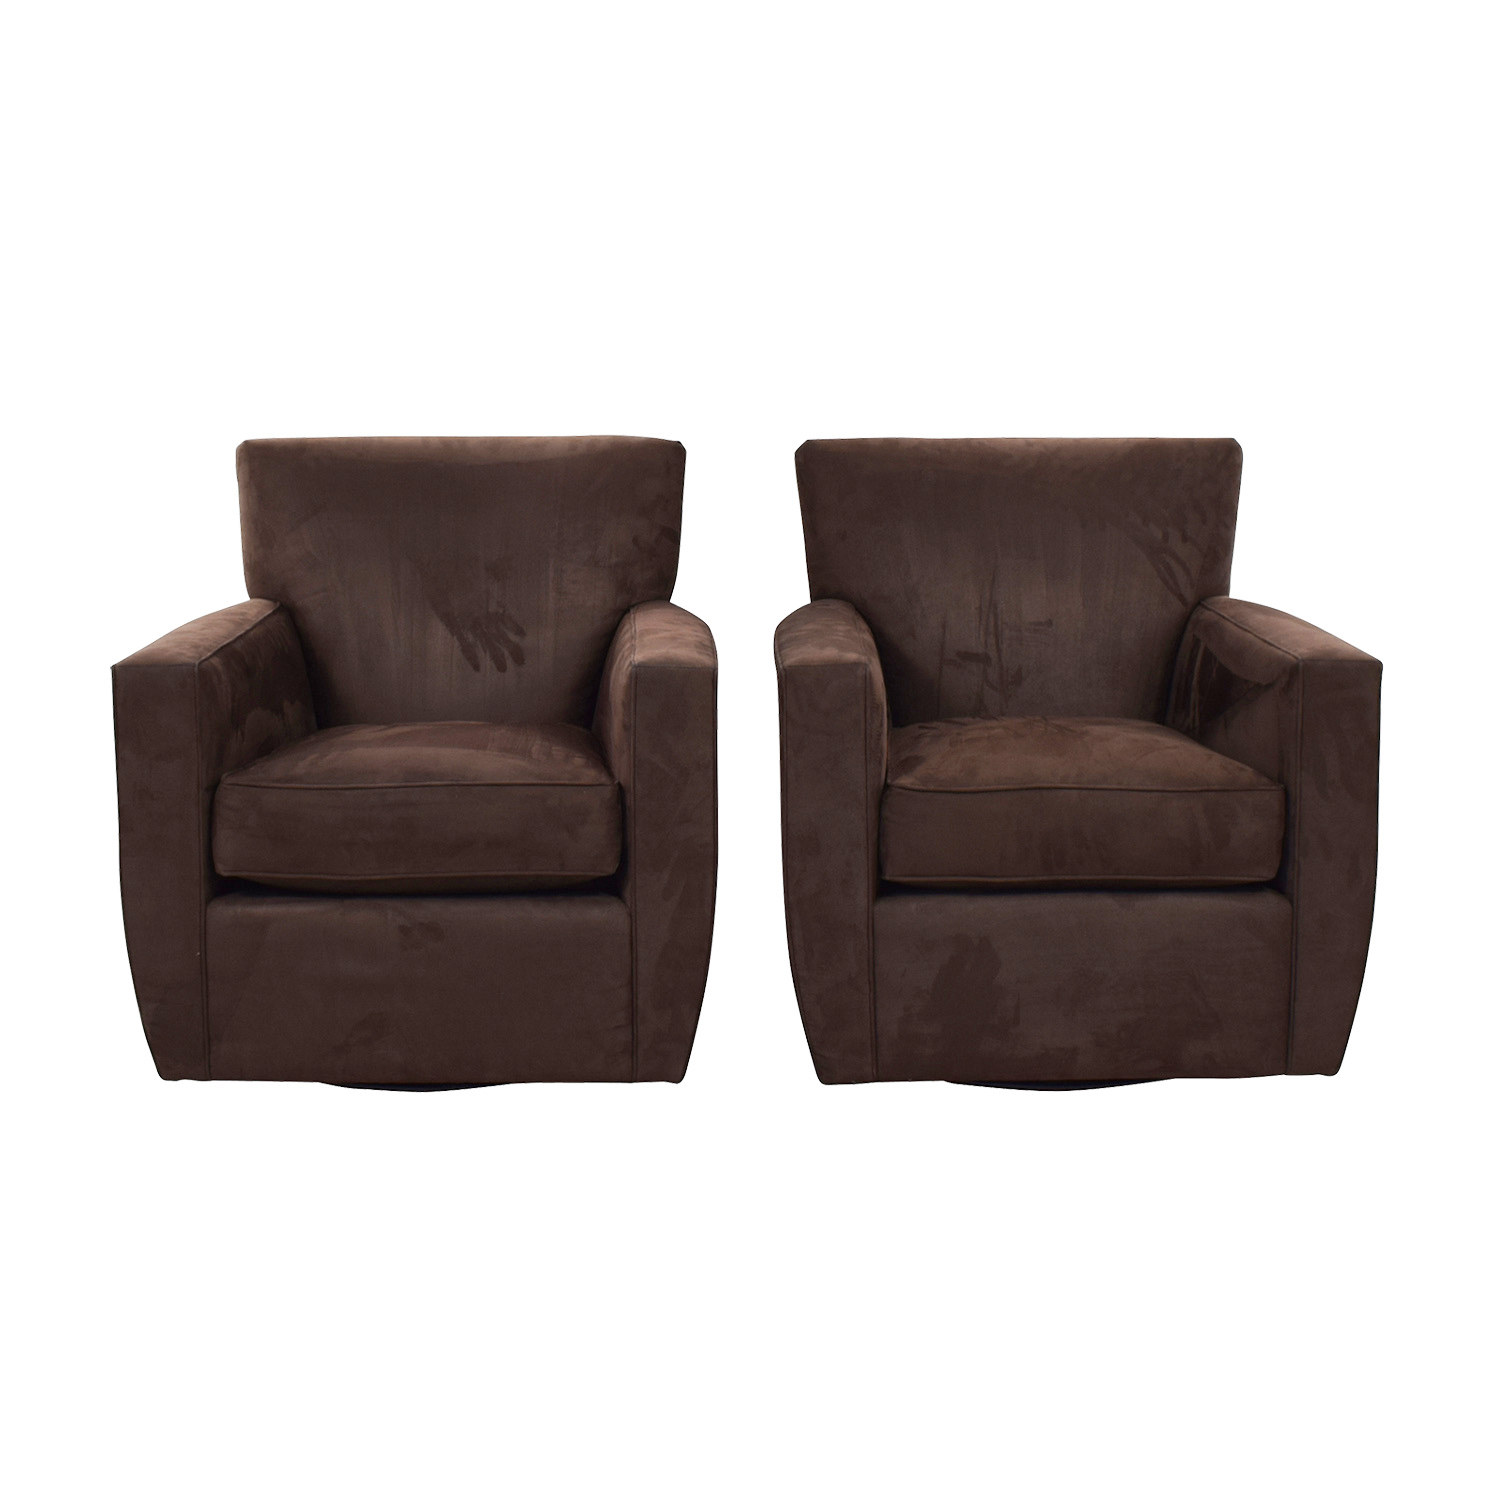 Crate & Barrel Crate & Barrel Clara Brown Swivel Chairs coupon